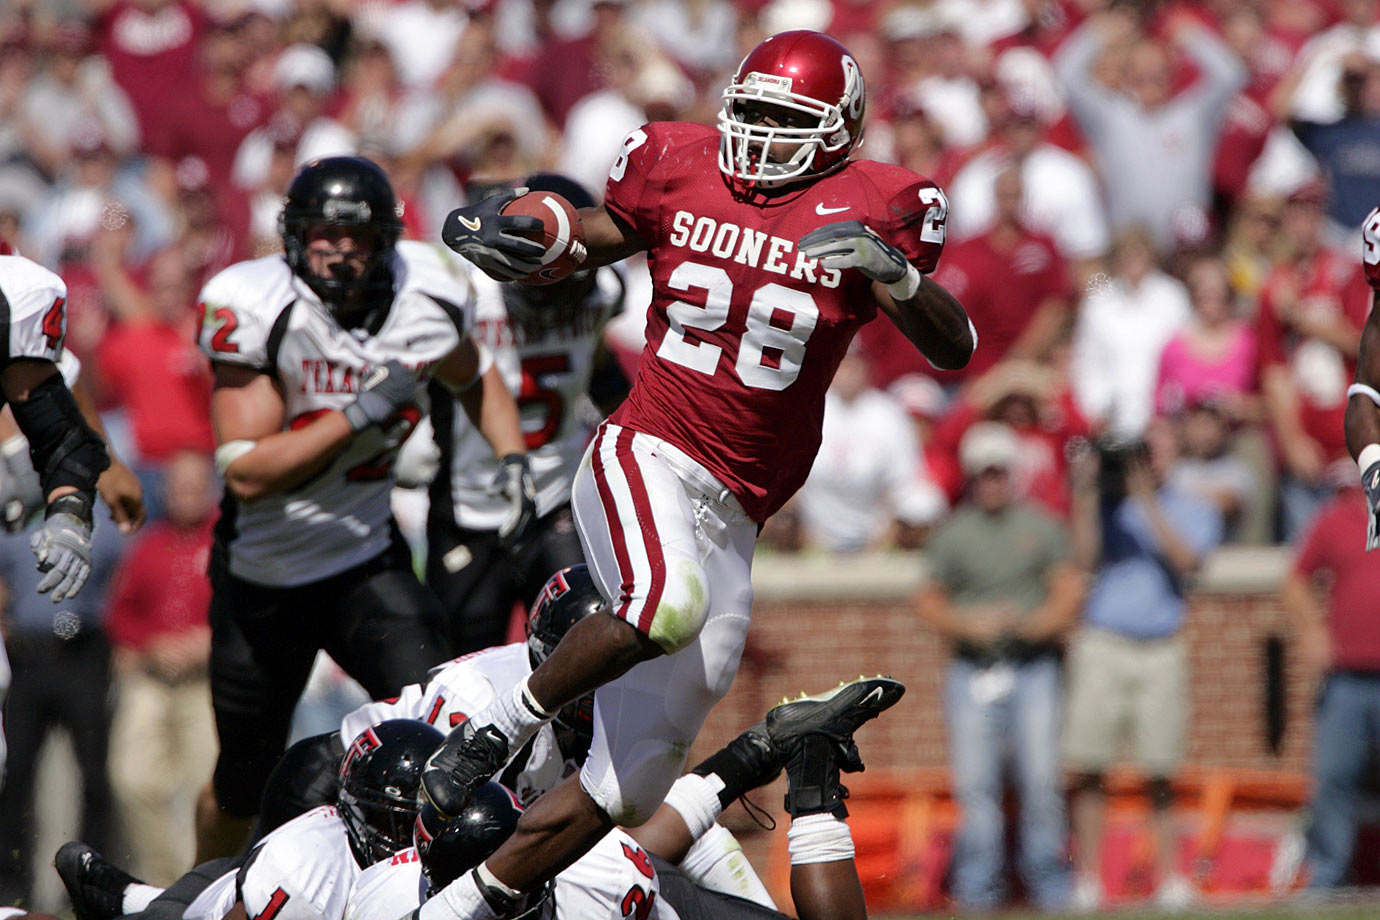 After being rated as the top overall recruit in the country by Rivals.com out of Palestine (Texas) High, Peterson set a freshman record by rushing for 1,925 yards in 2004. That season he helped Oklahoma compile a 12-1 record and he finished second in the Heisman Trophy voting. Peterson missed part of his final college season after breaking his collarbone on a touchdown run against Iowa State before declaring for the draft in 2007. — Runner-up: Anthony Davis, RB, USC (1972-74)